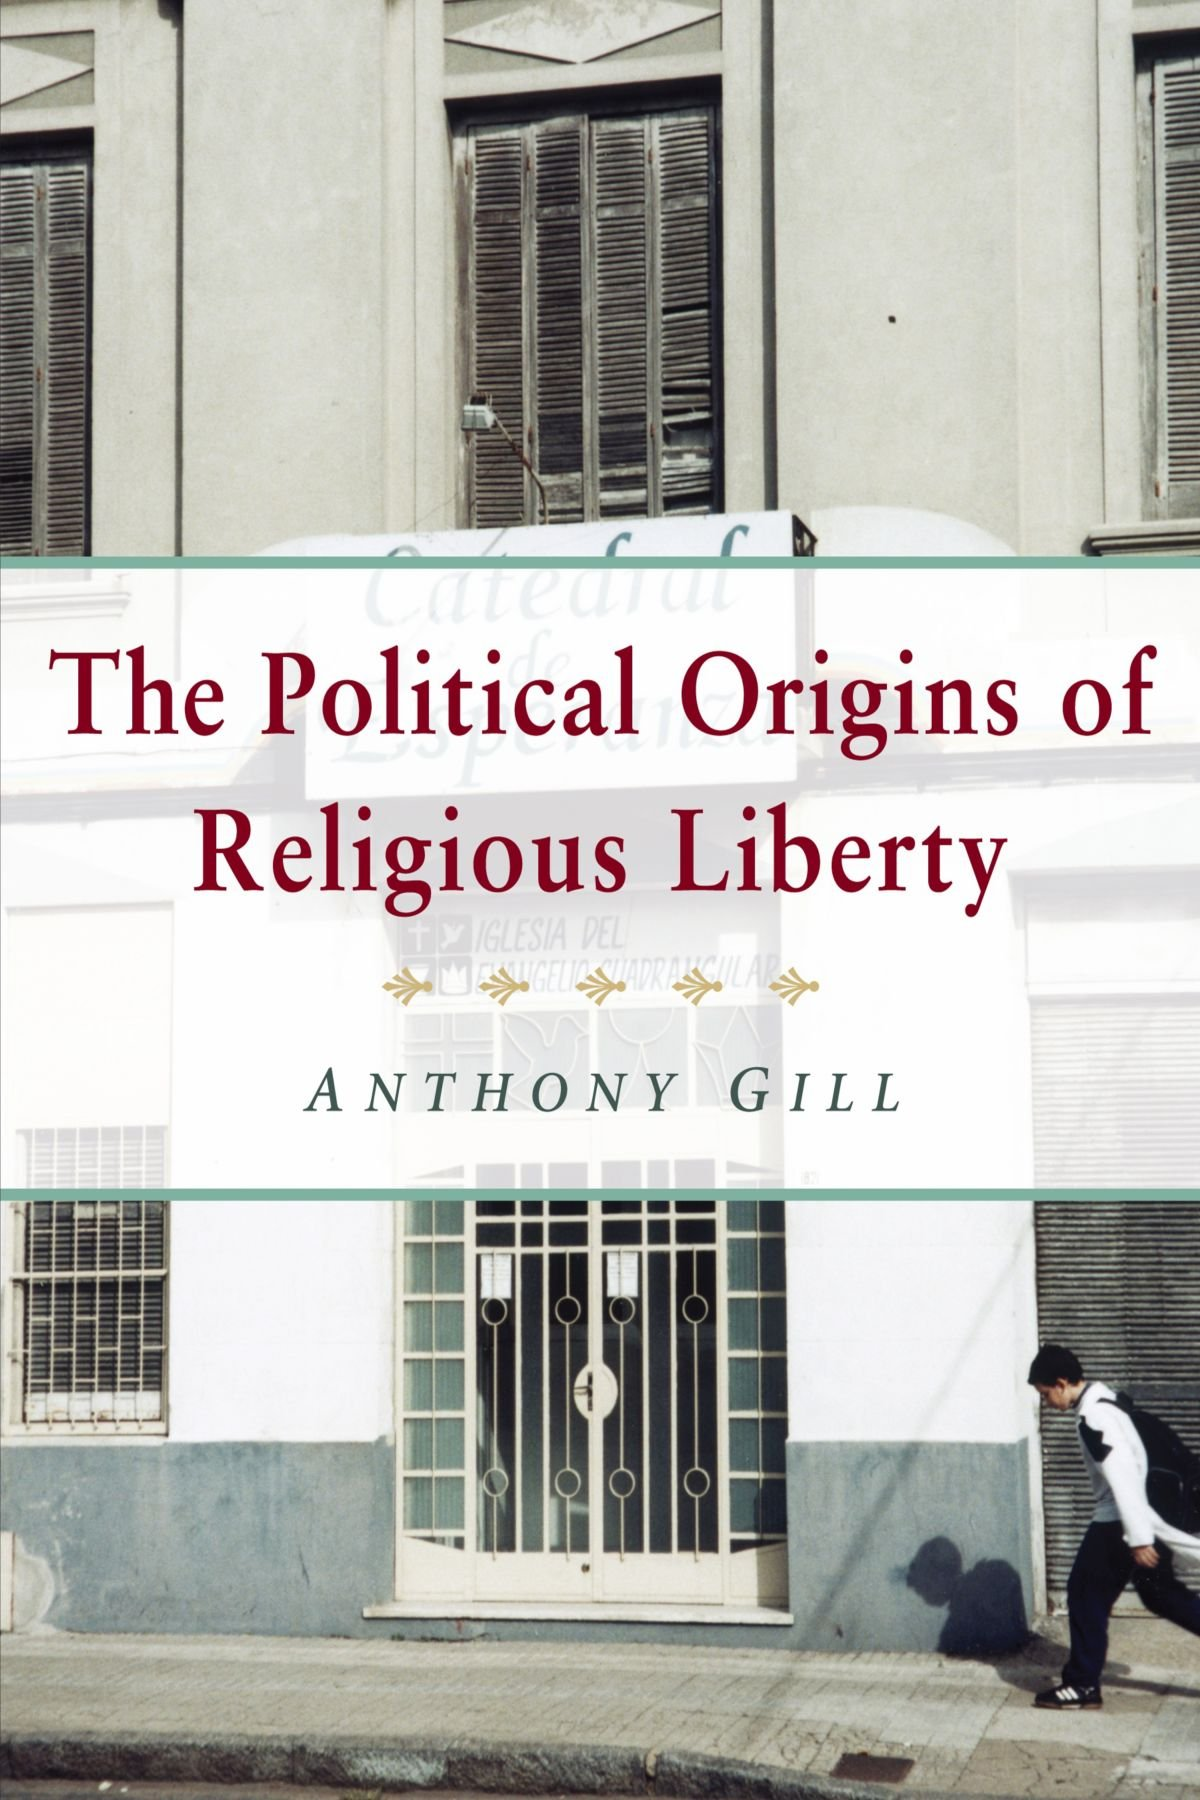 The Political Origins of Religious Liberty (Cambridge Studies in Social Theory, Religion and Politics)